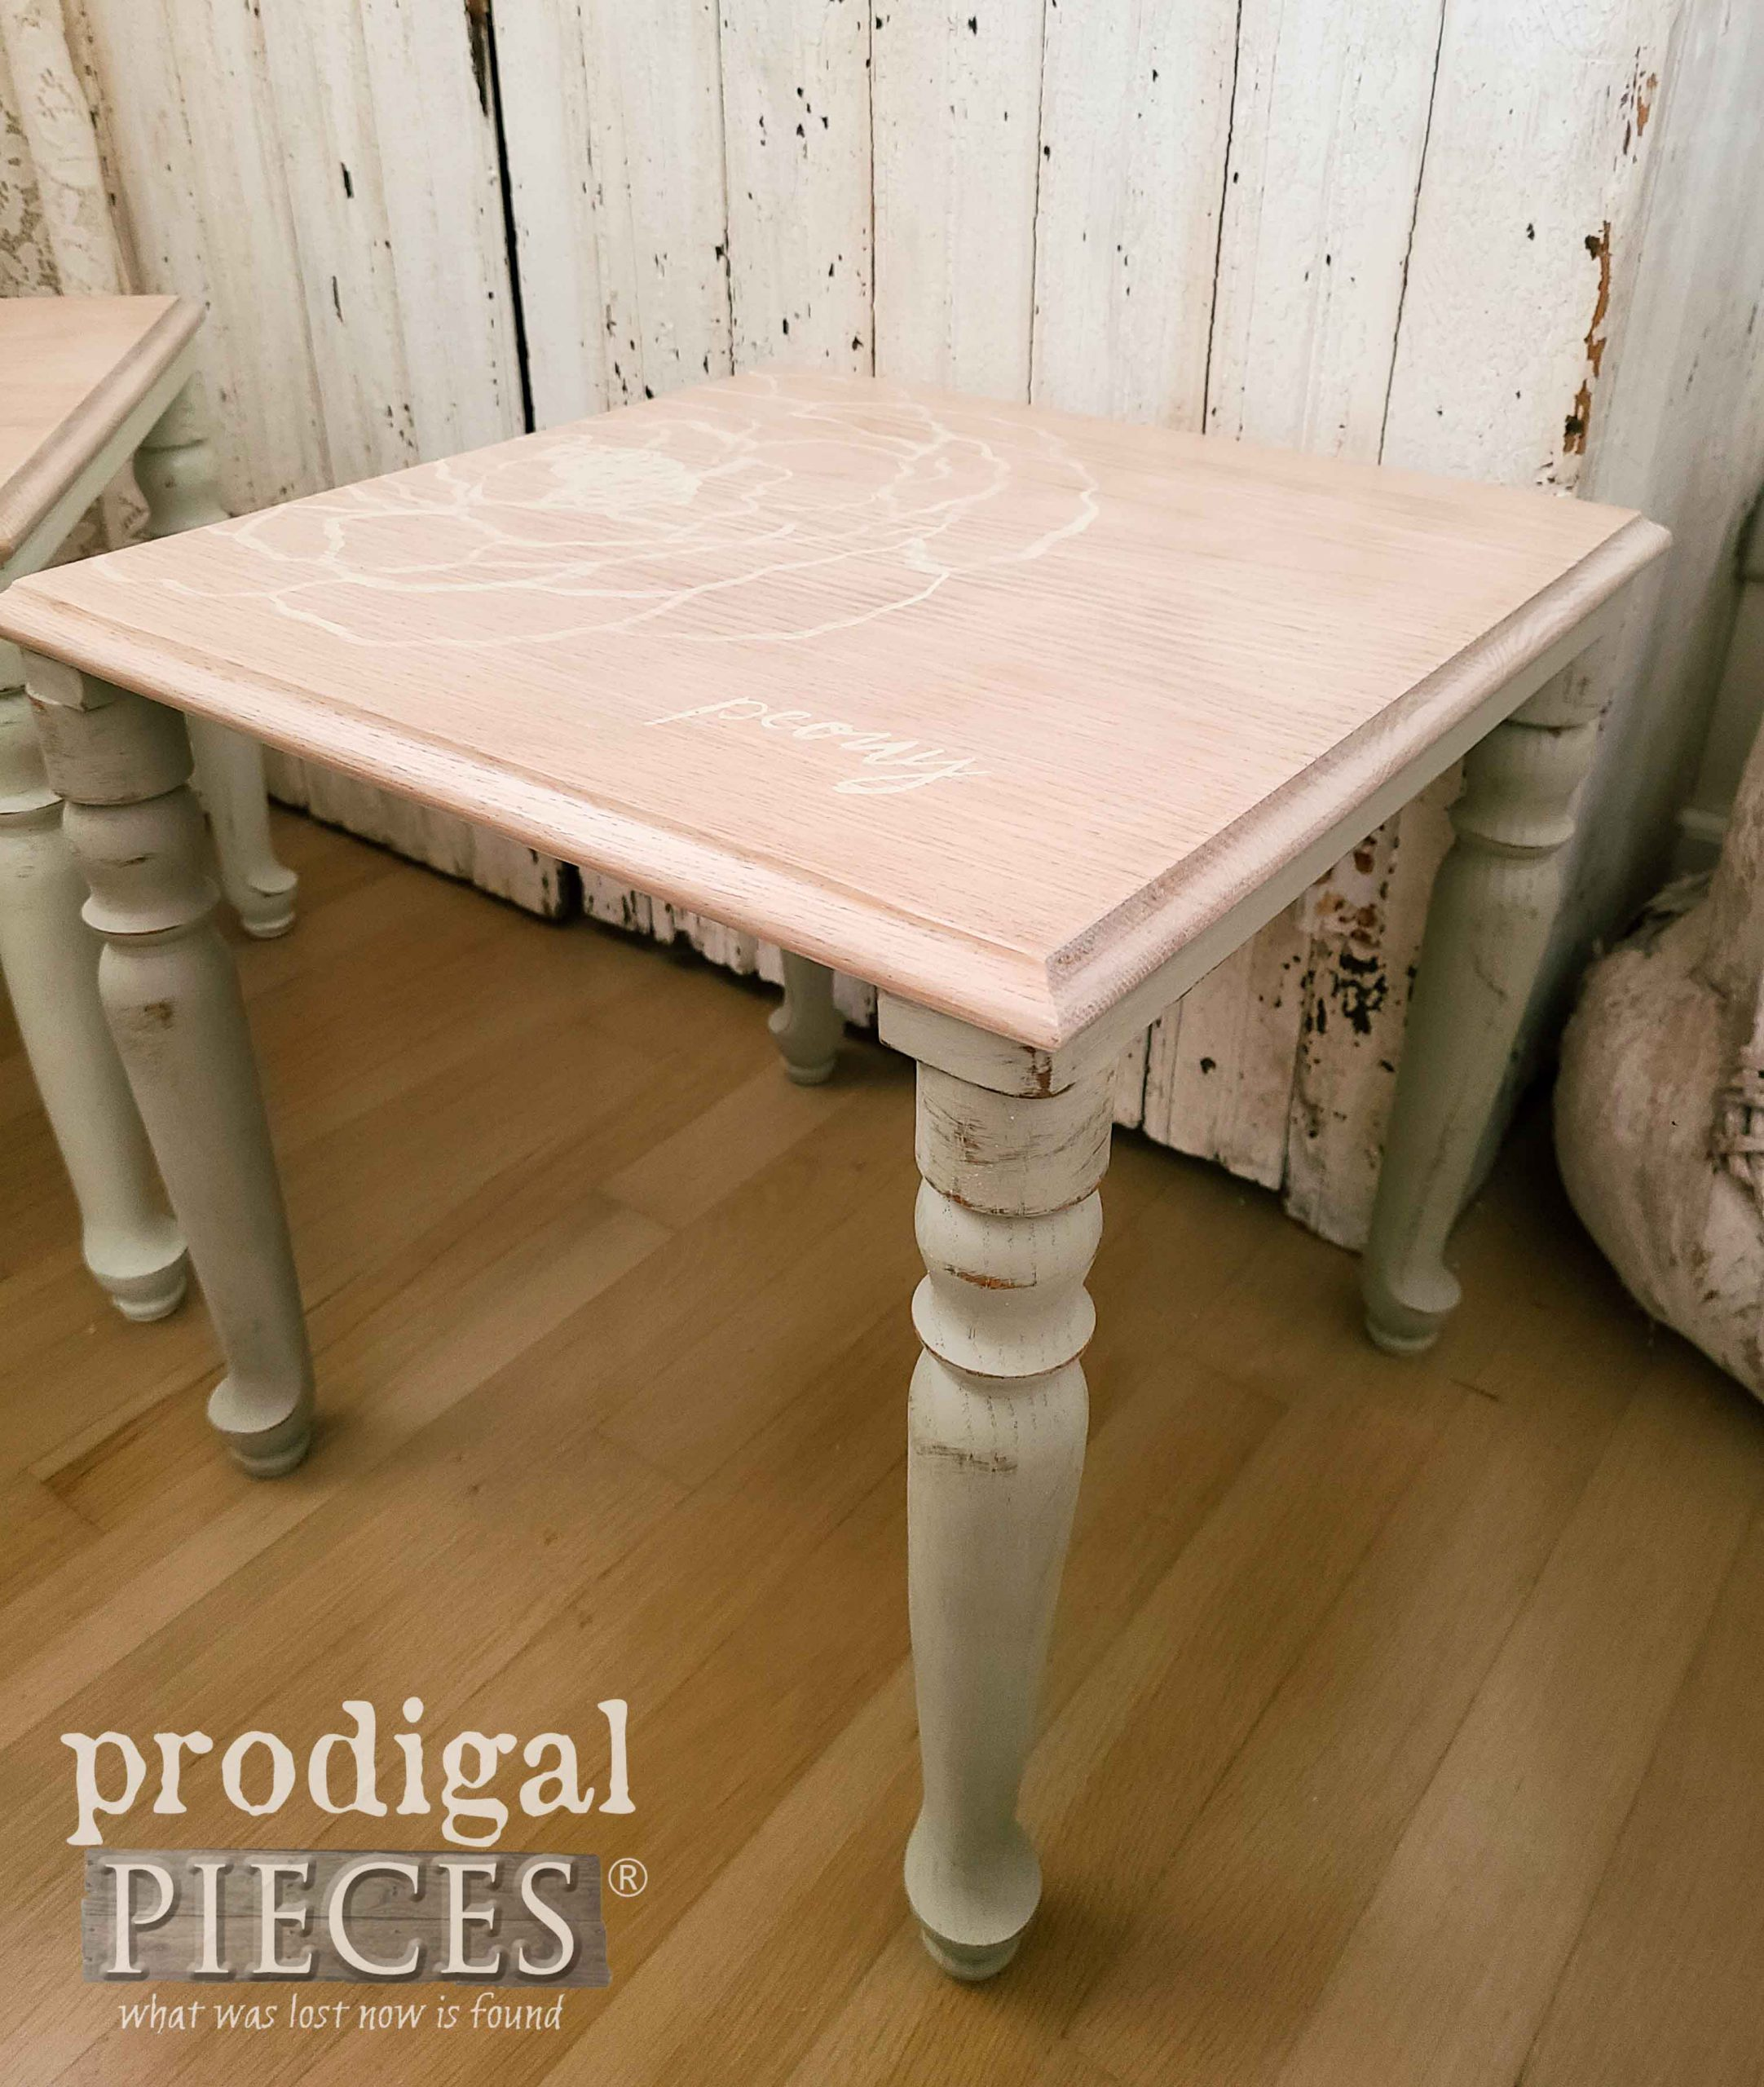 Painted Peony Flower Vintage Stacking Table by Prodigal Pieces | prodigalpieces.com #prodigalpieces #home #homedecor #furniture